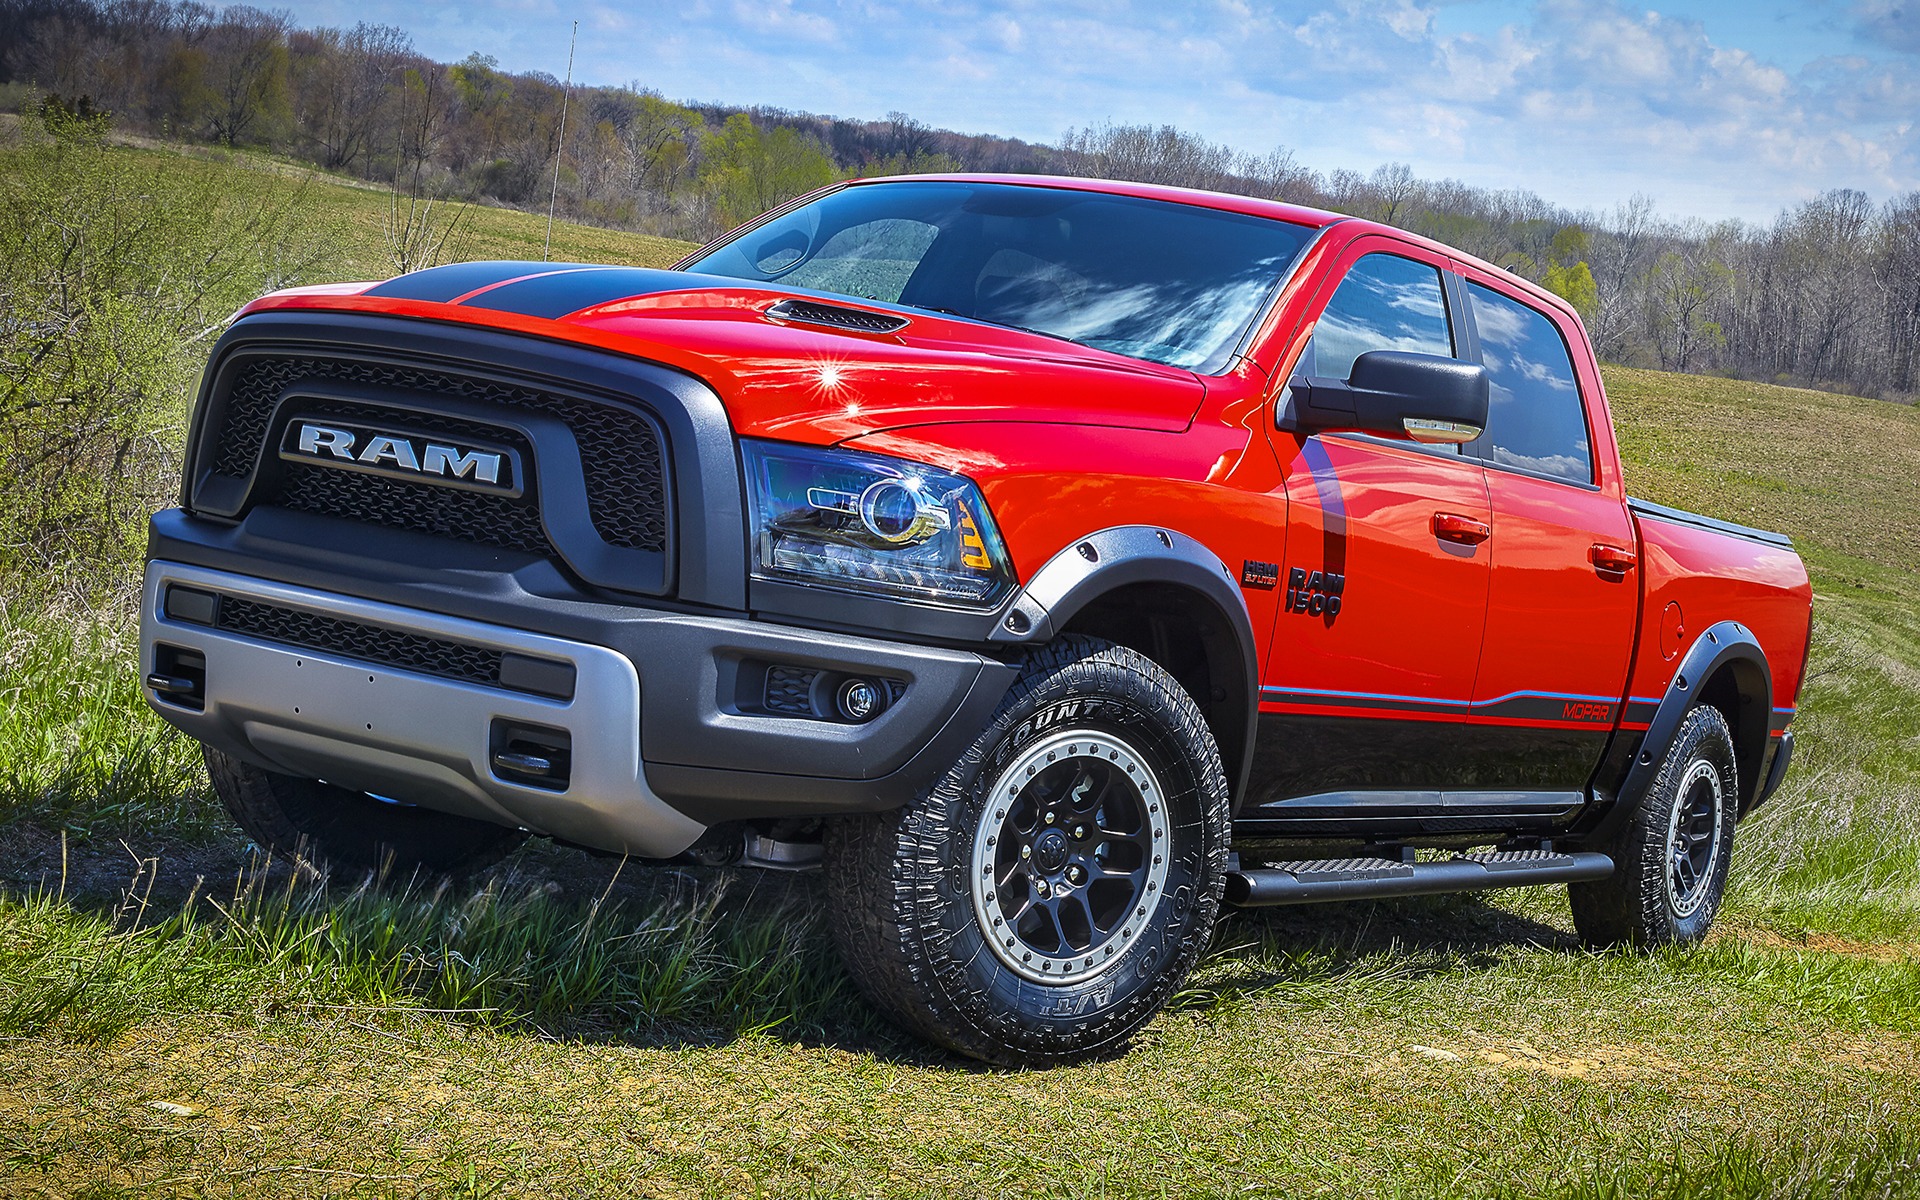 2016 Mopar 16 Ram Rebel - Wallpapers and HD Images | Car Pixel